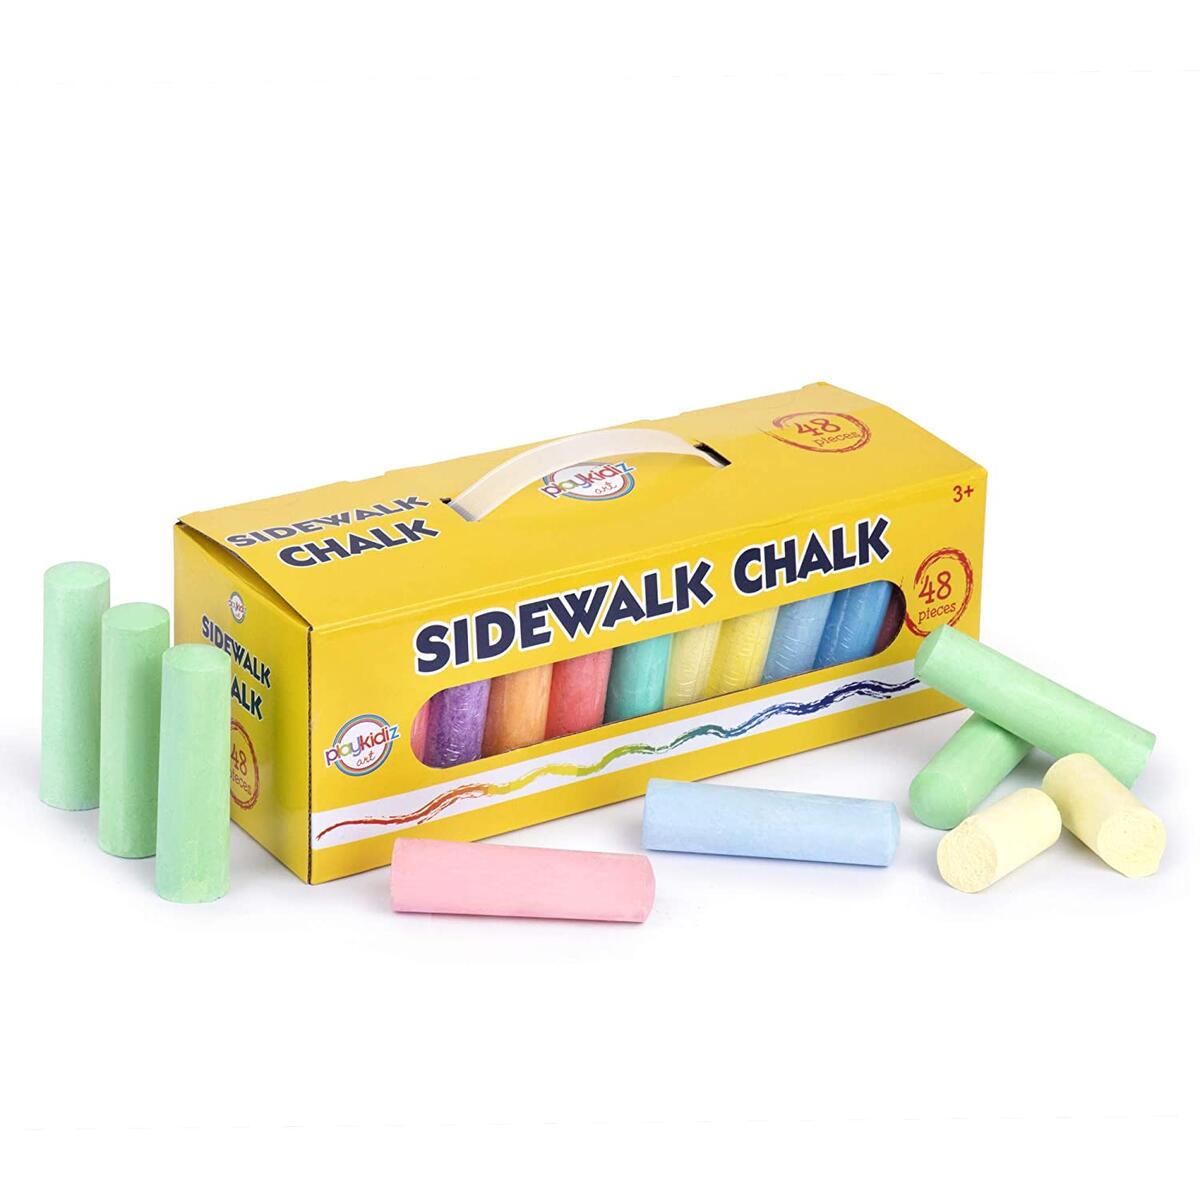 48 Piece Sidewalk Chalk Assortment of Colors Great for Playing Outdoors Comes with a Convenient Carrying Case and Handle